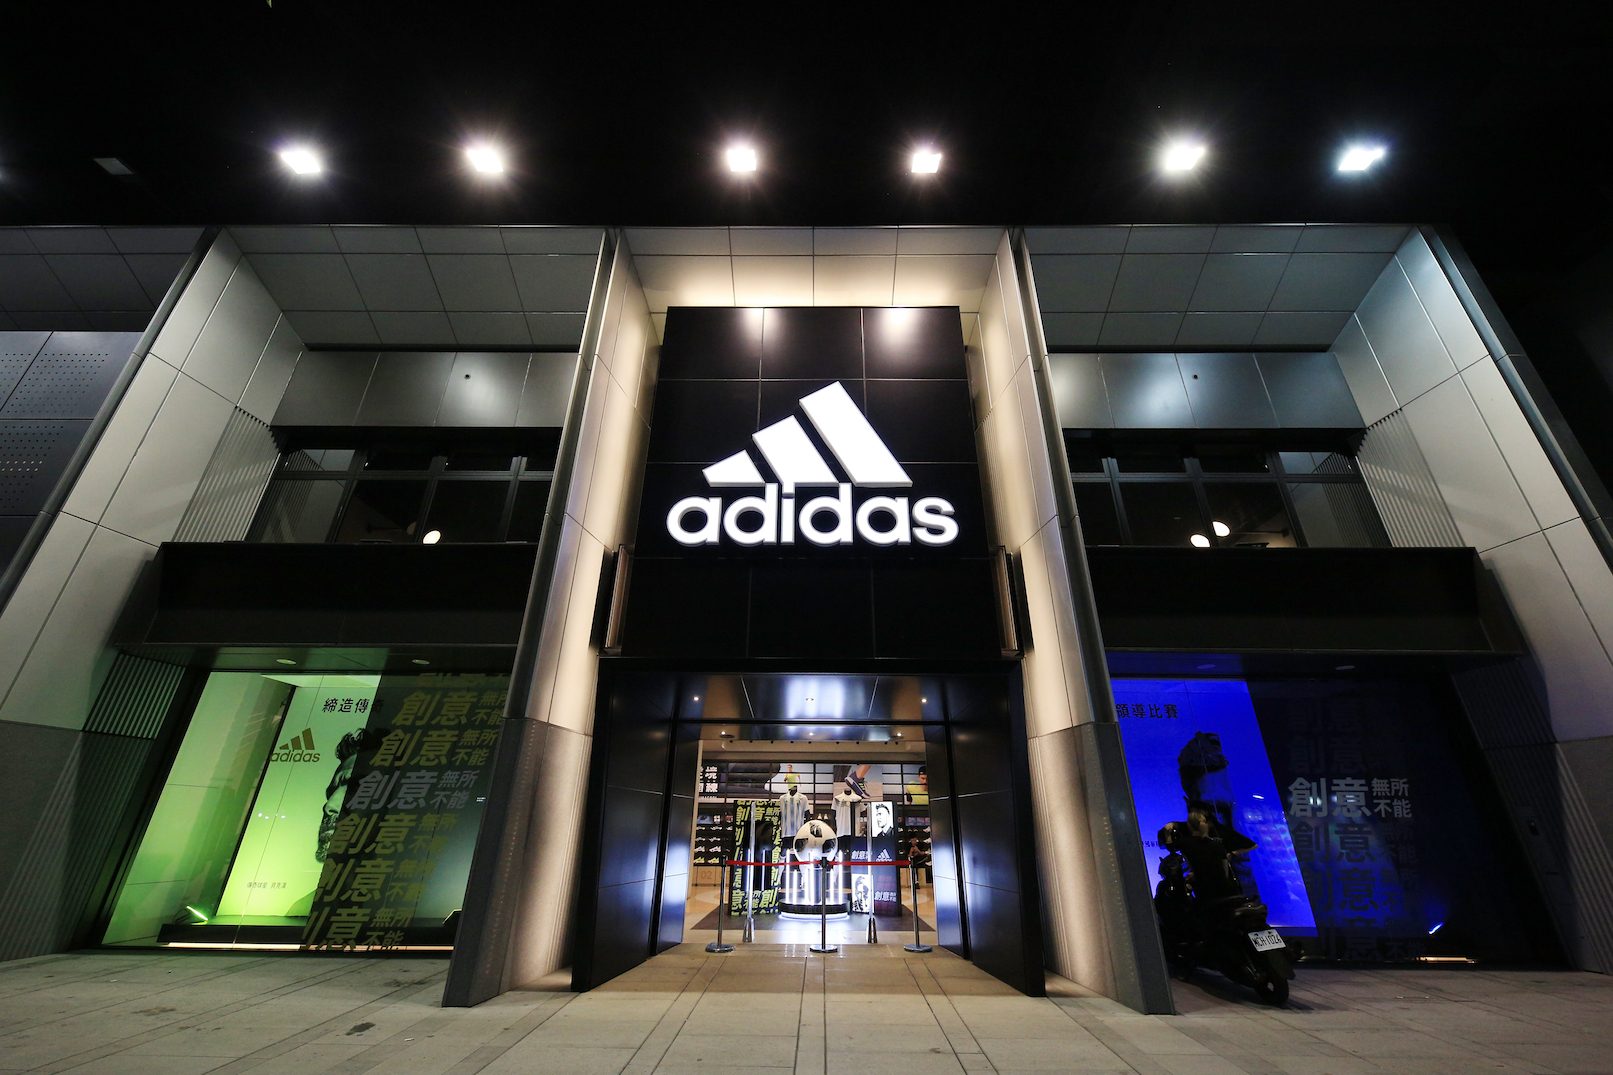 Adidas is taking another step toward the production of sustainable products, pledging to use only recycled plastic by the year 2024.